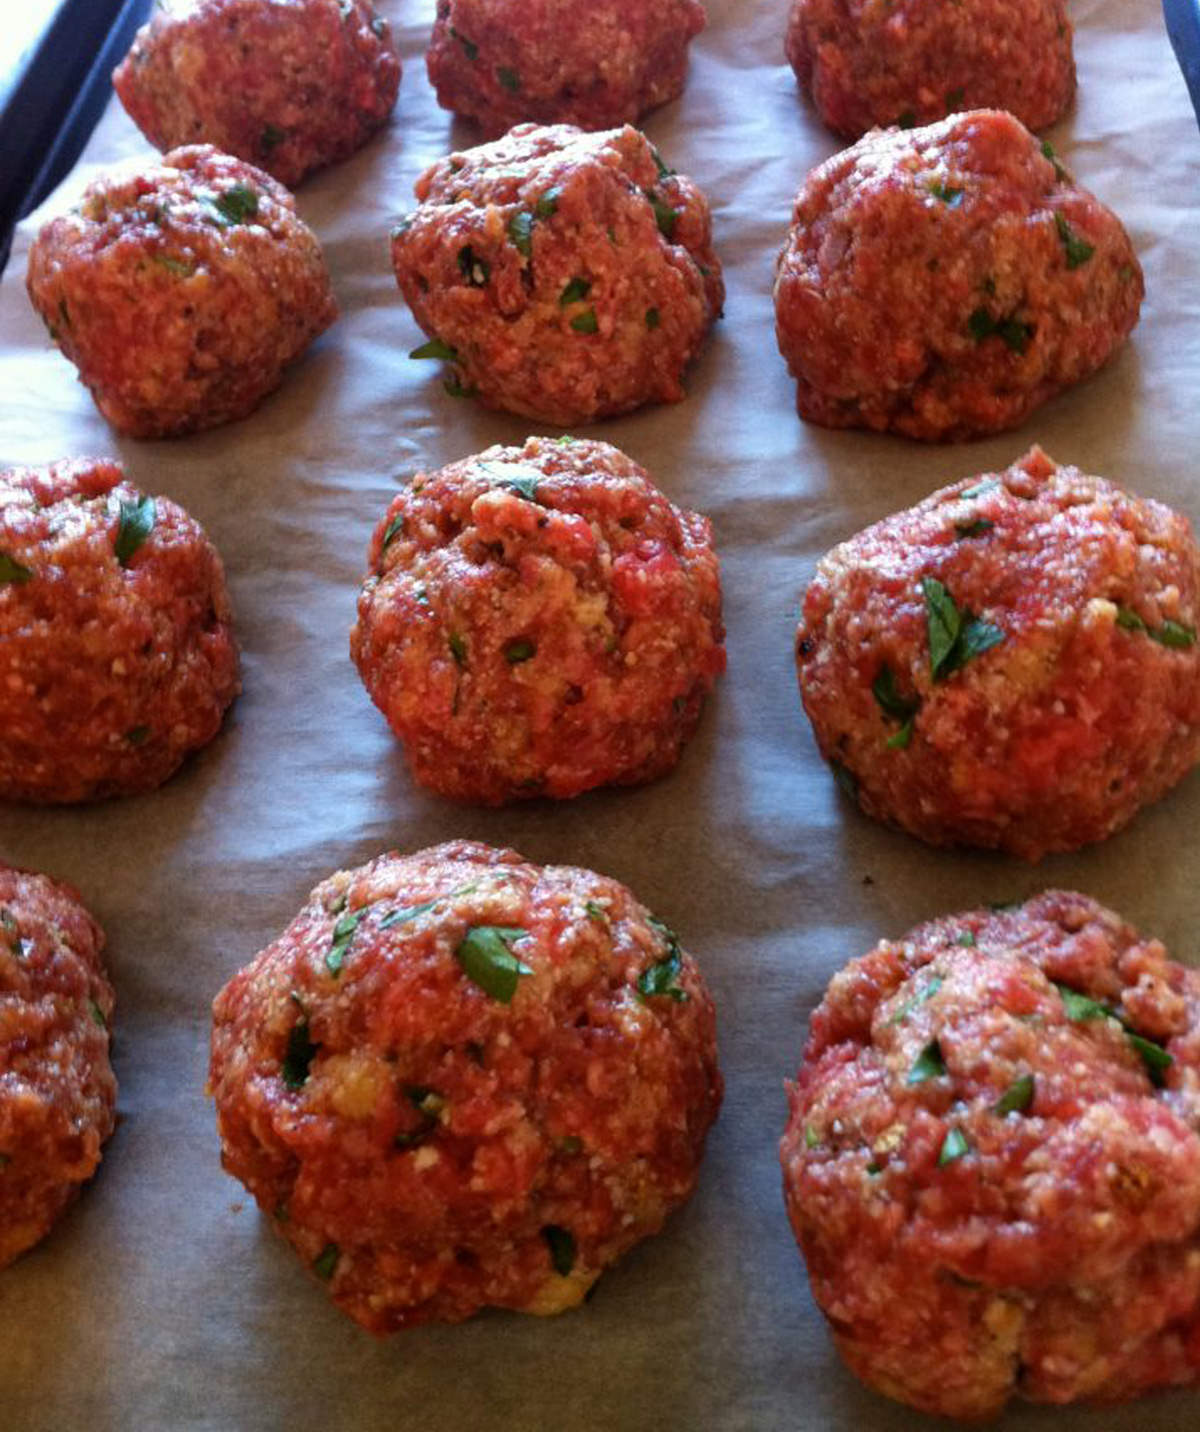 Can i make meatballs with panko bread crumbs